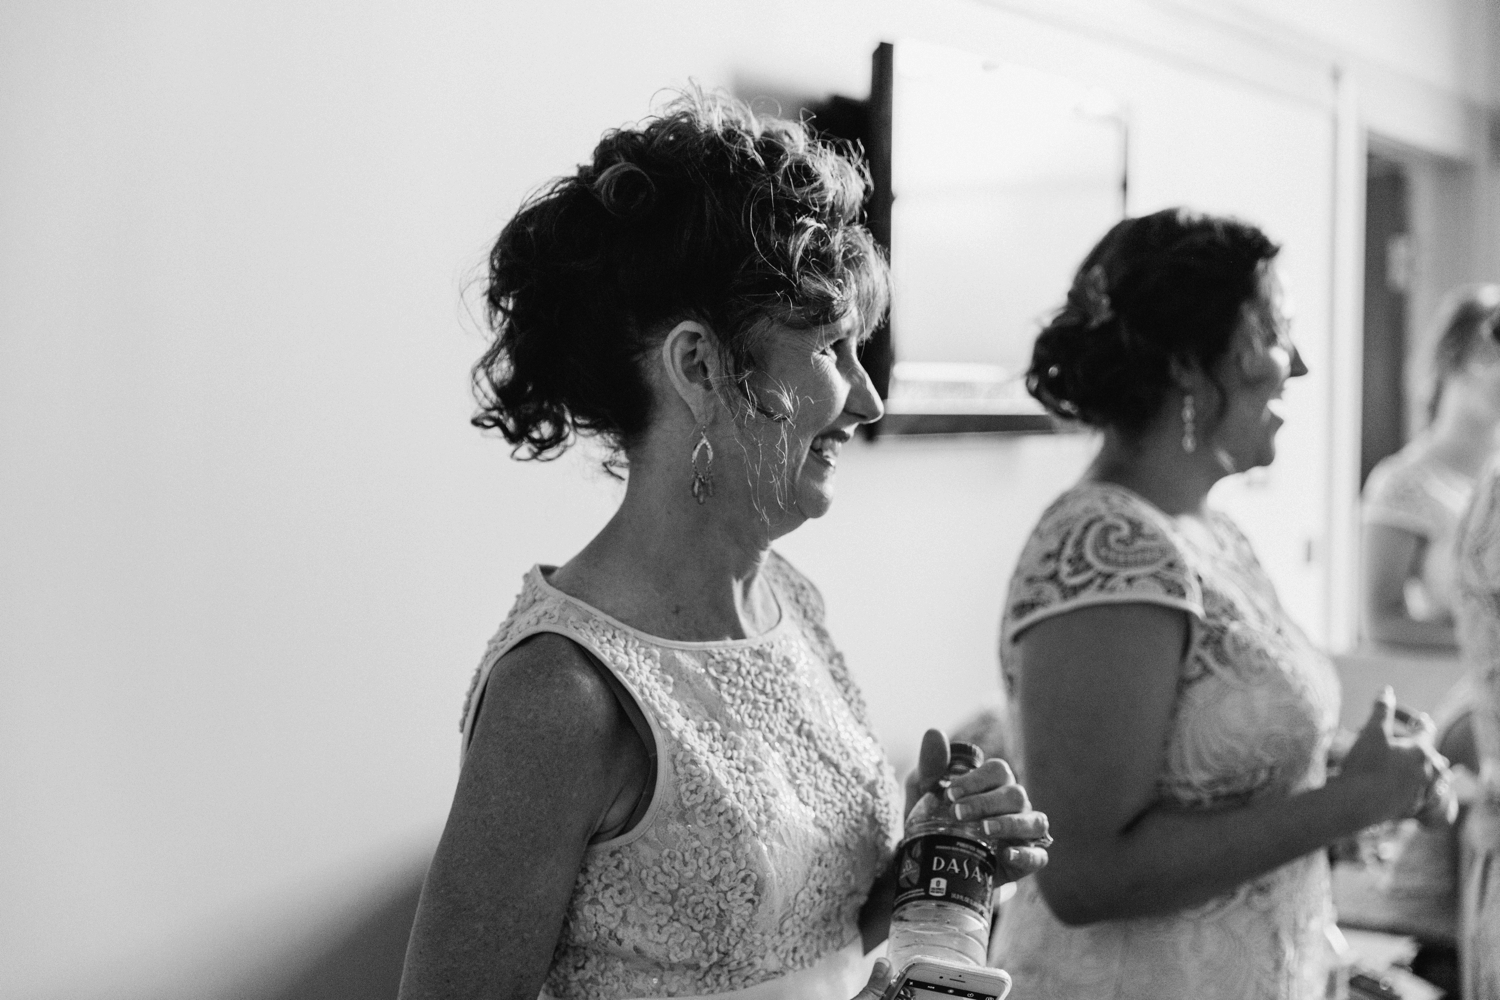 Wedding-at-The-Savannah-Center-West-Chester-Ohio-Photography-Chloe-Luka-Photography_7367.jpg